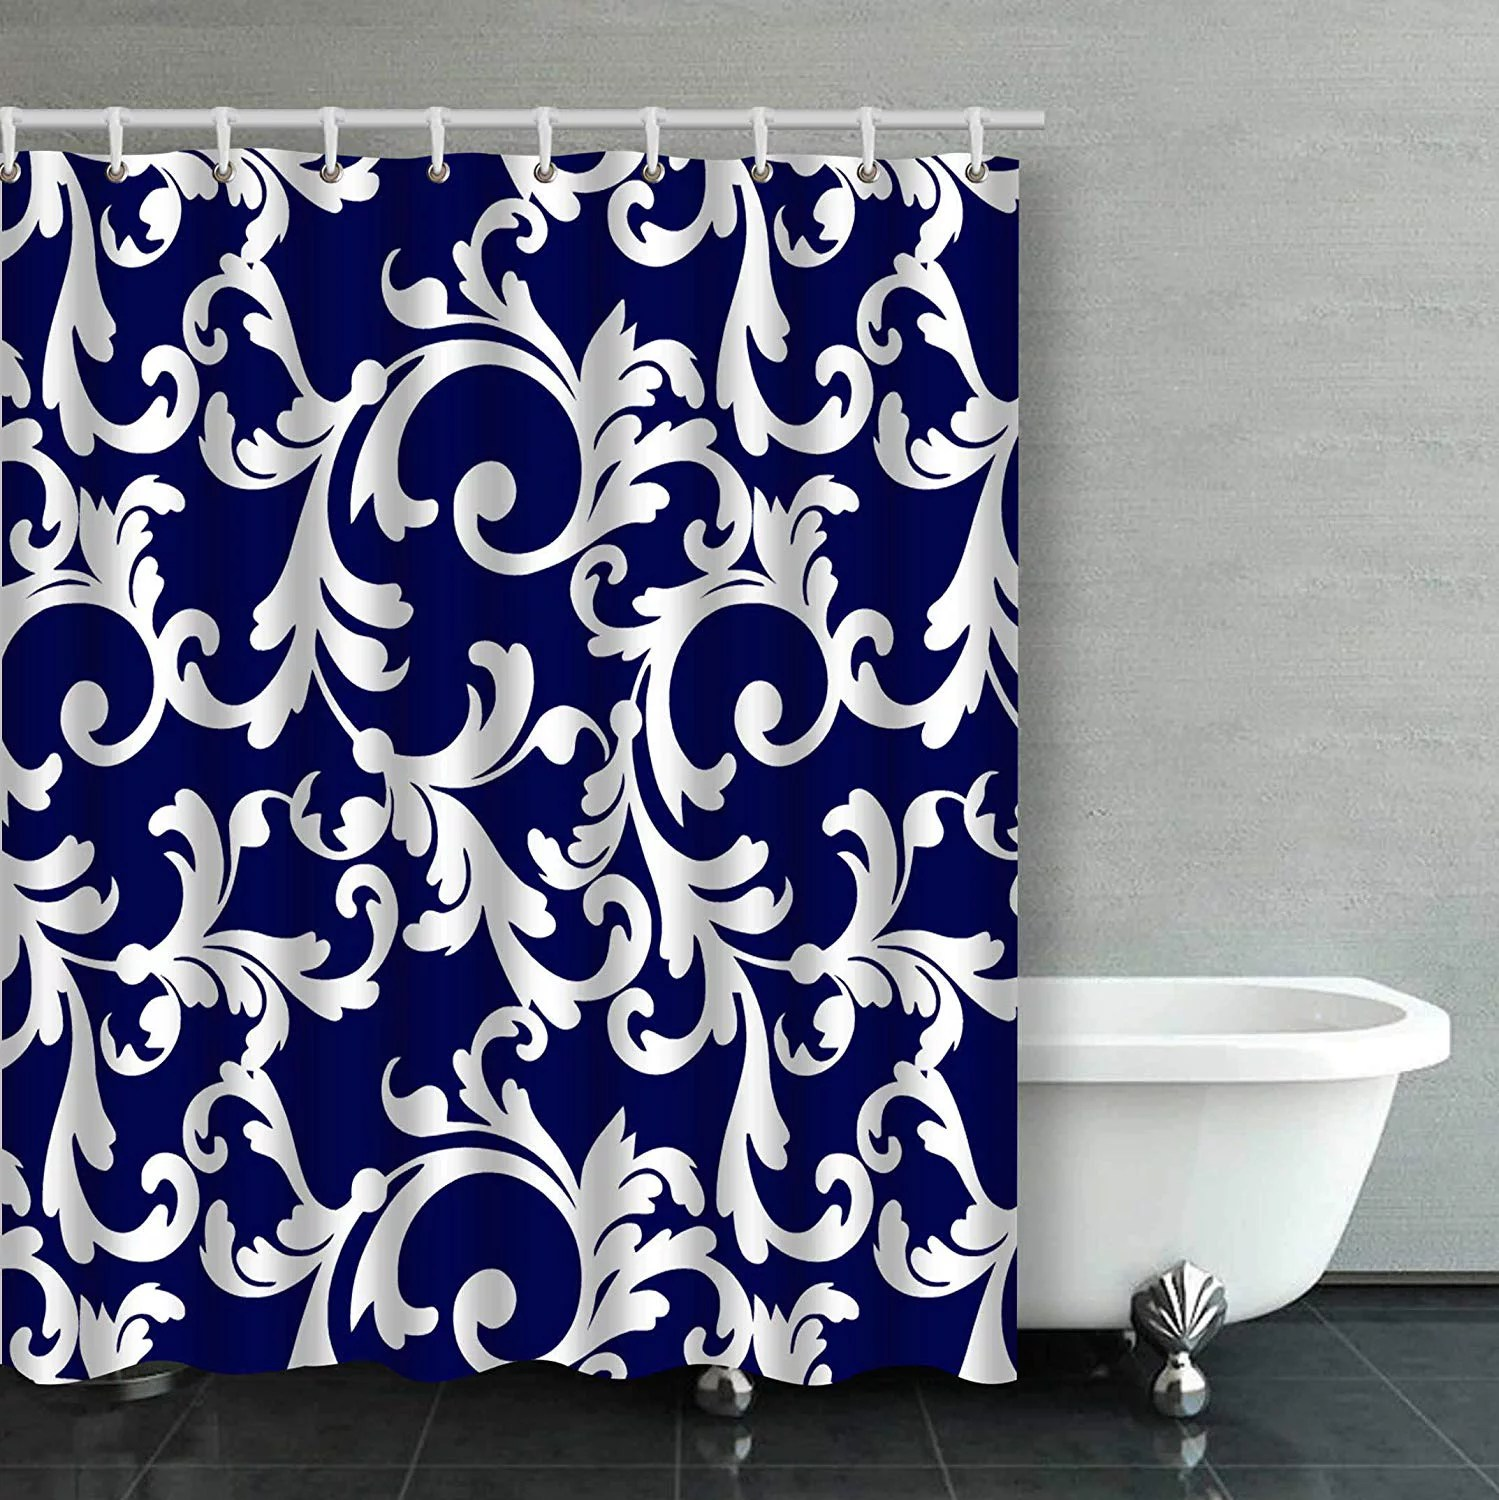 artjia elegant navy blue and white floral pattern bathroom shower curtain 66x72 inches